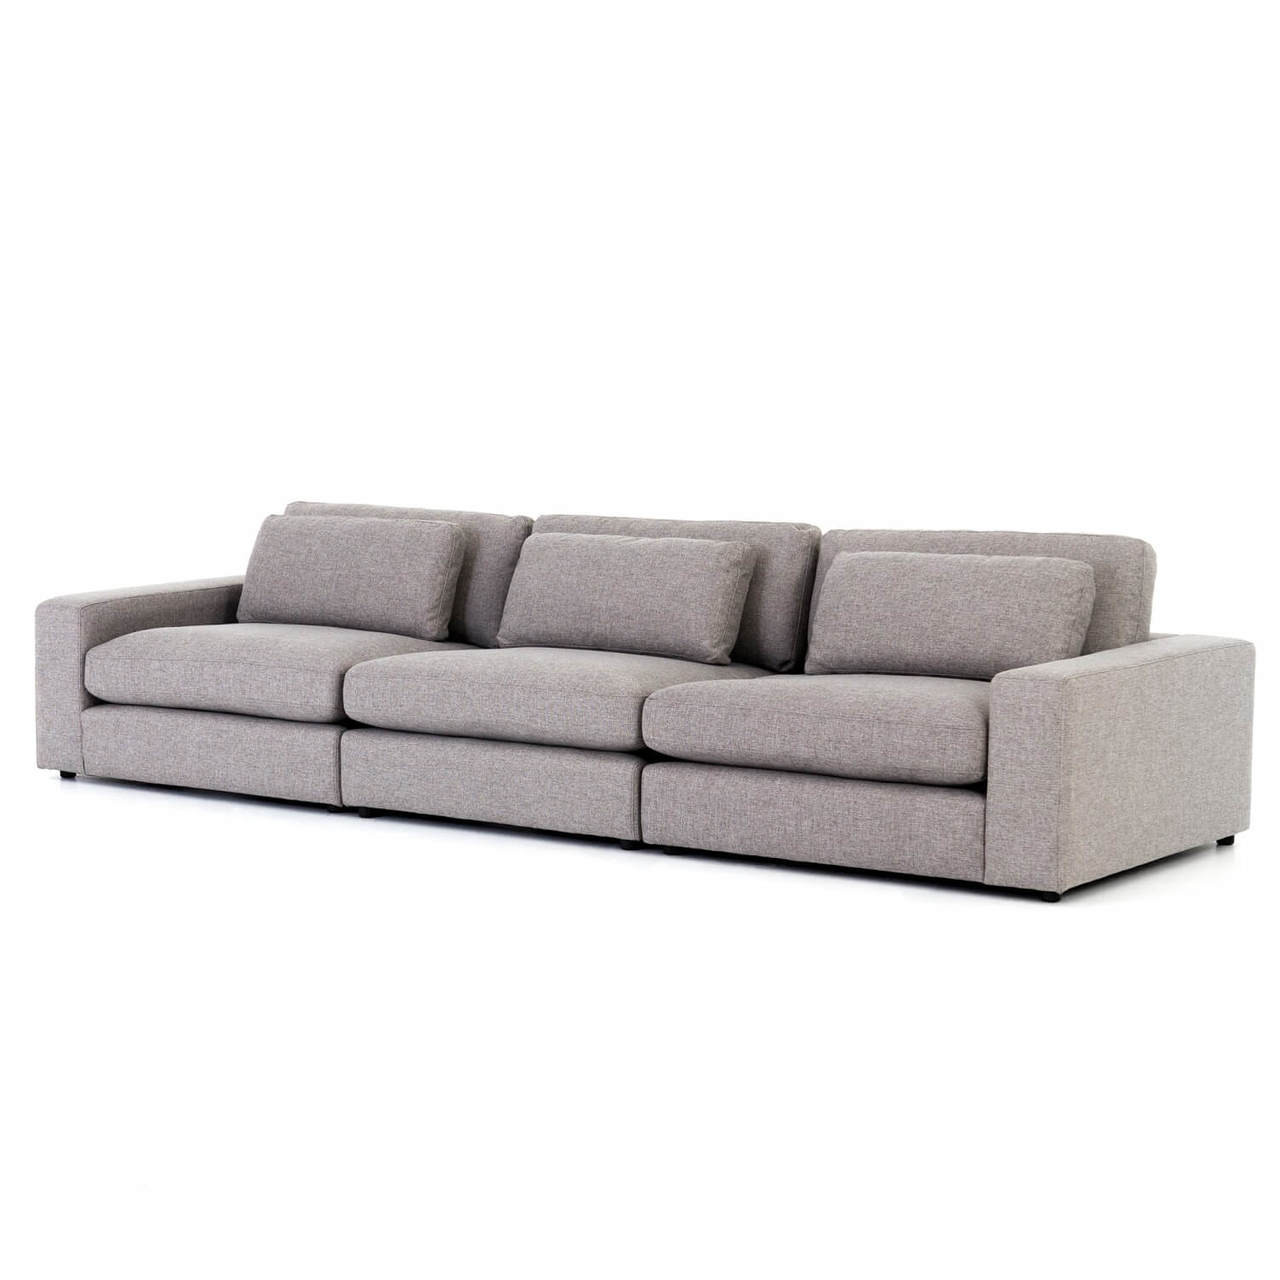 Bloor Contemporary Gray Fabric 3 Seater Large Sofa 131\